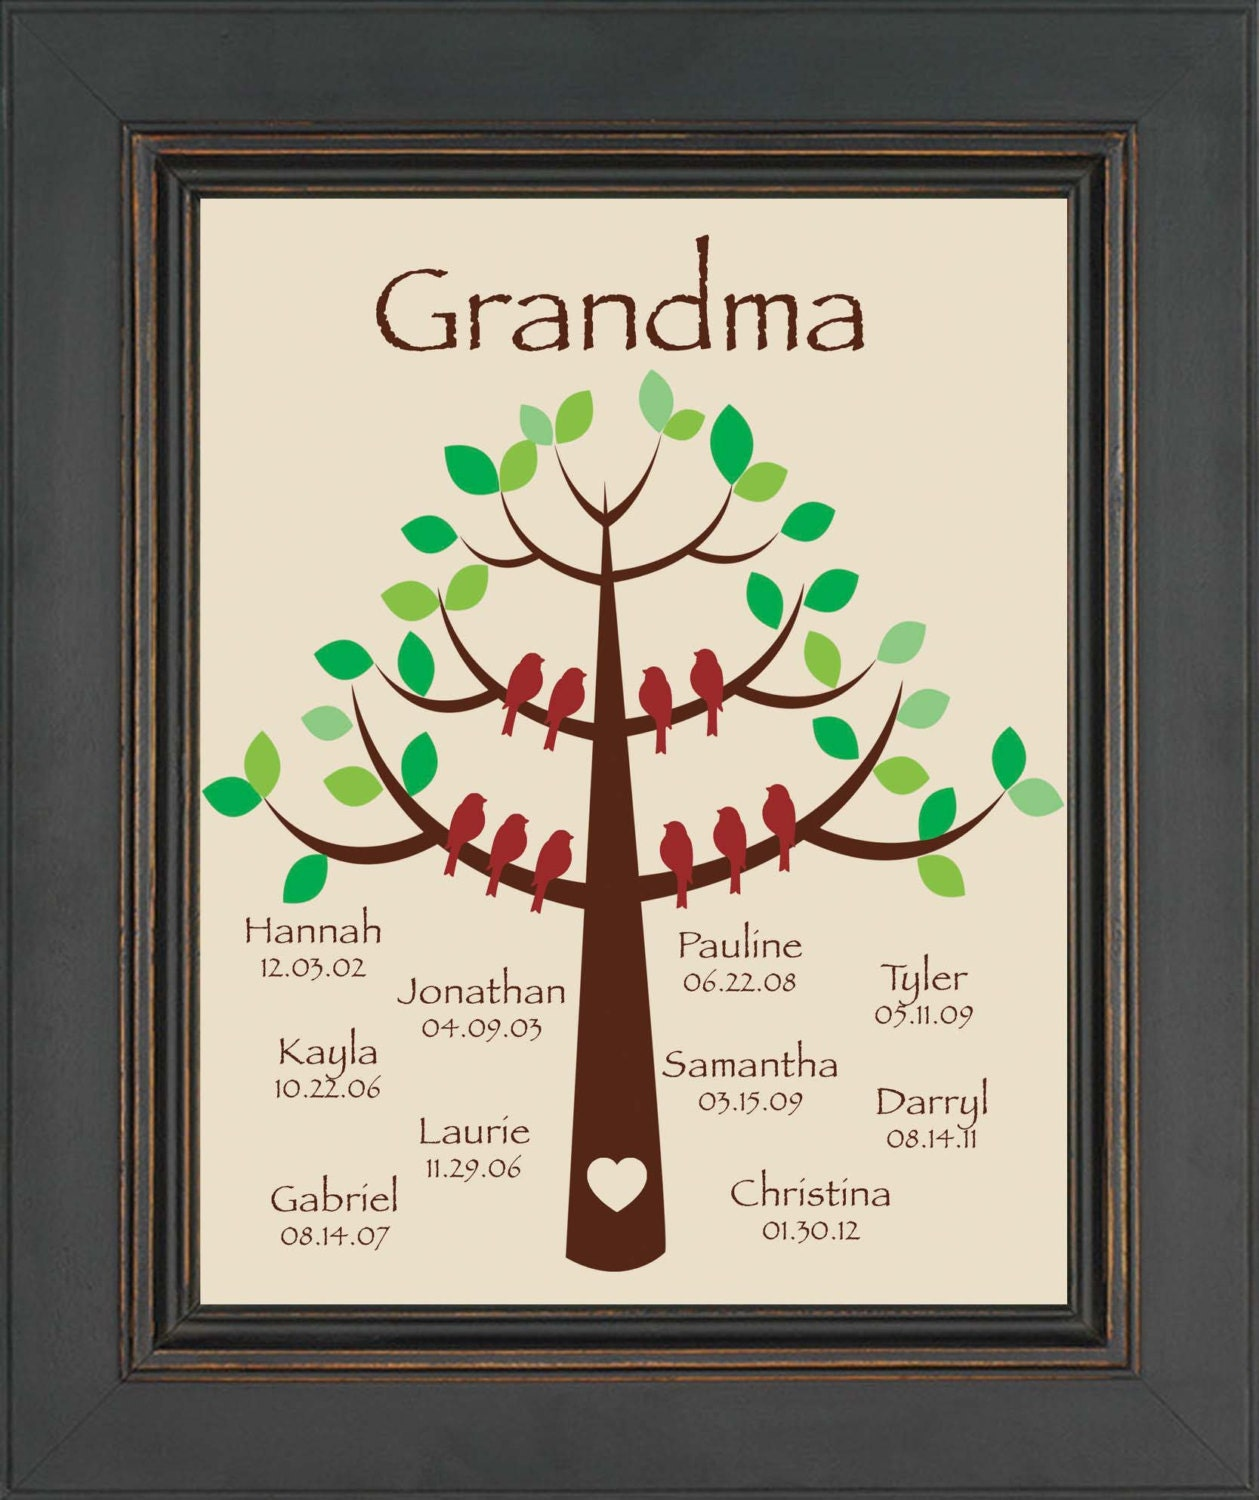 Grandma gift family tree personalized gift for grandmother for Family tree gifts personalized